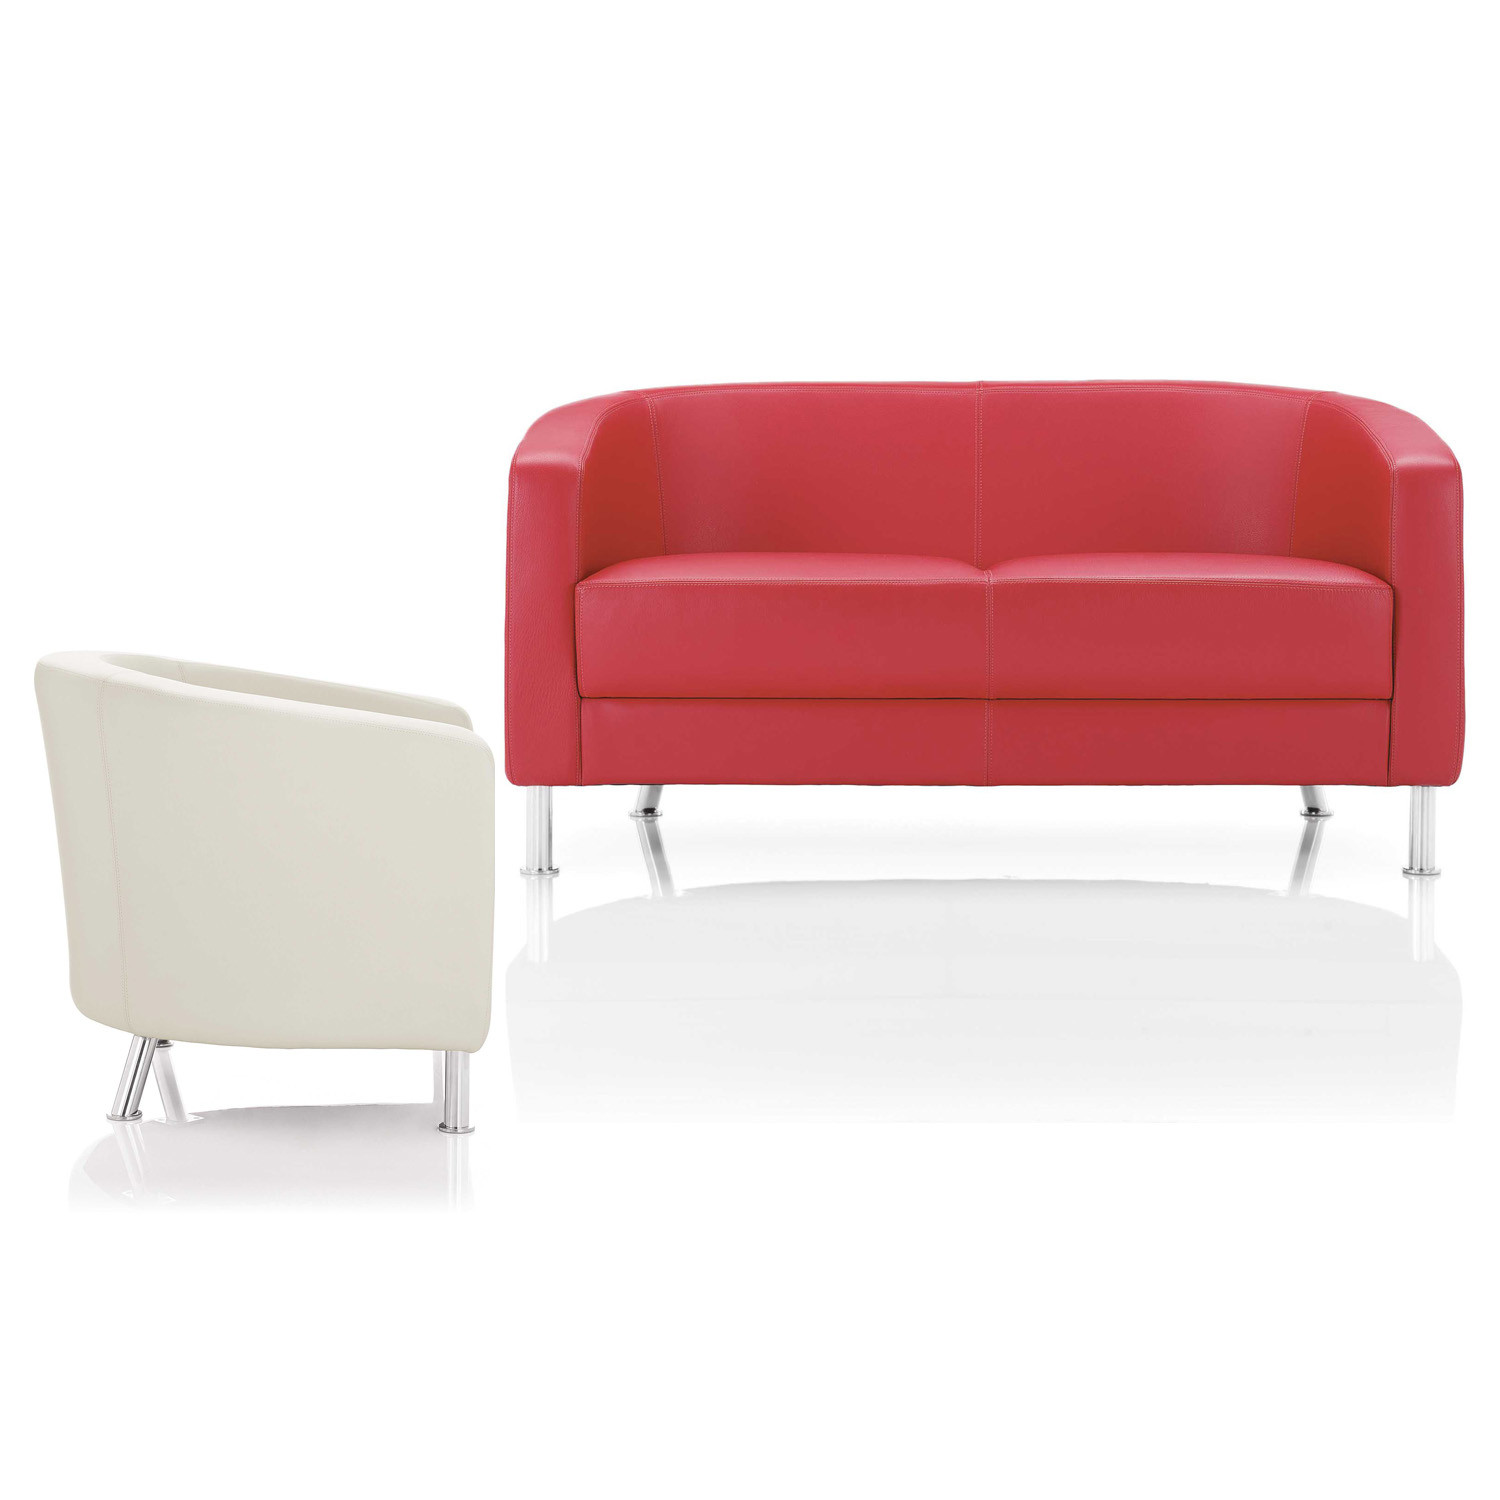 Zoot Two Seater Sofa and Armchair